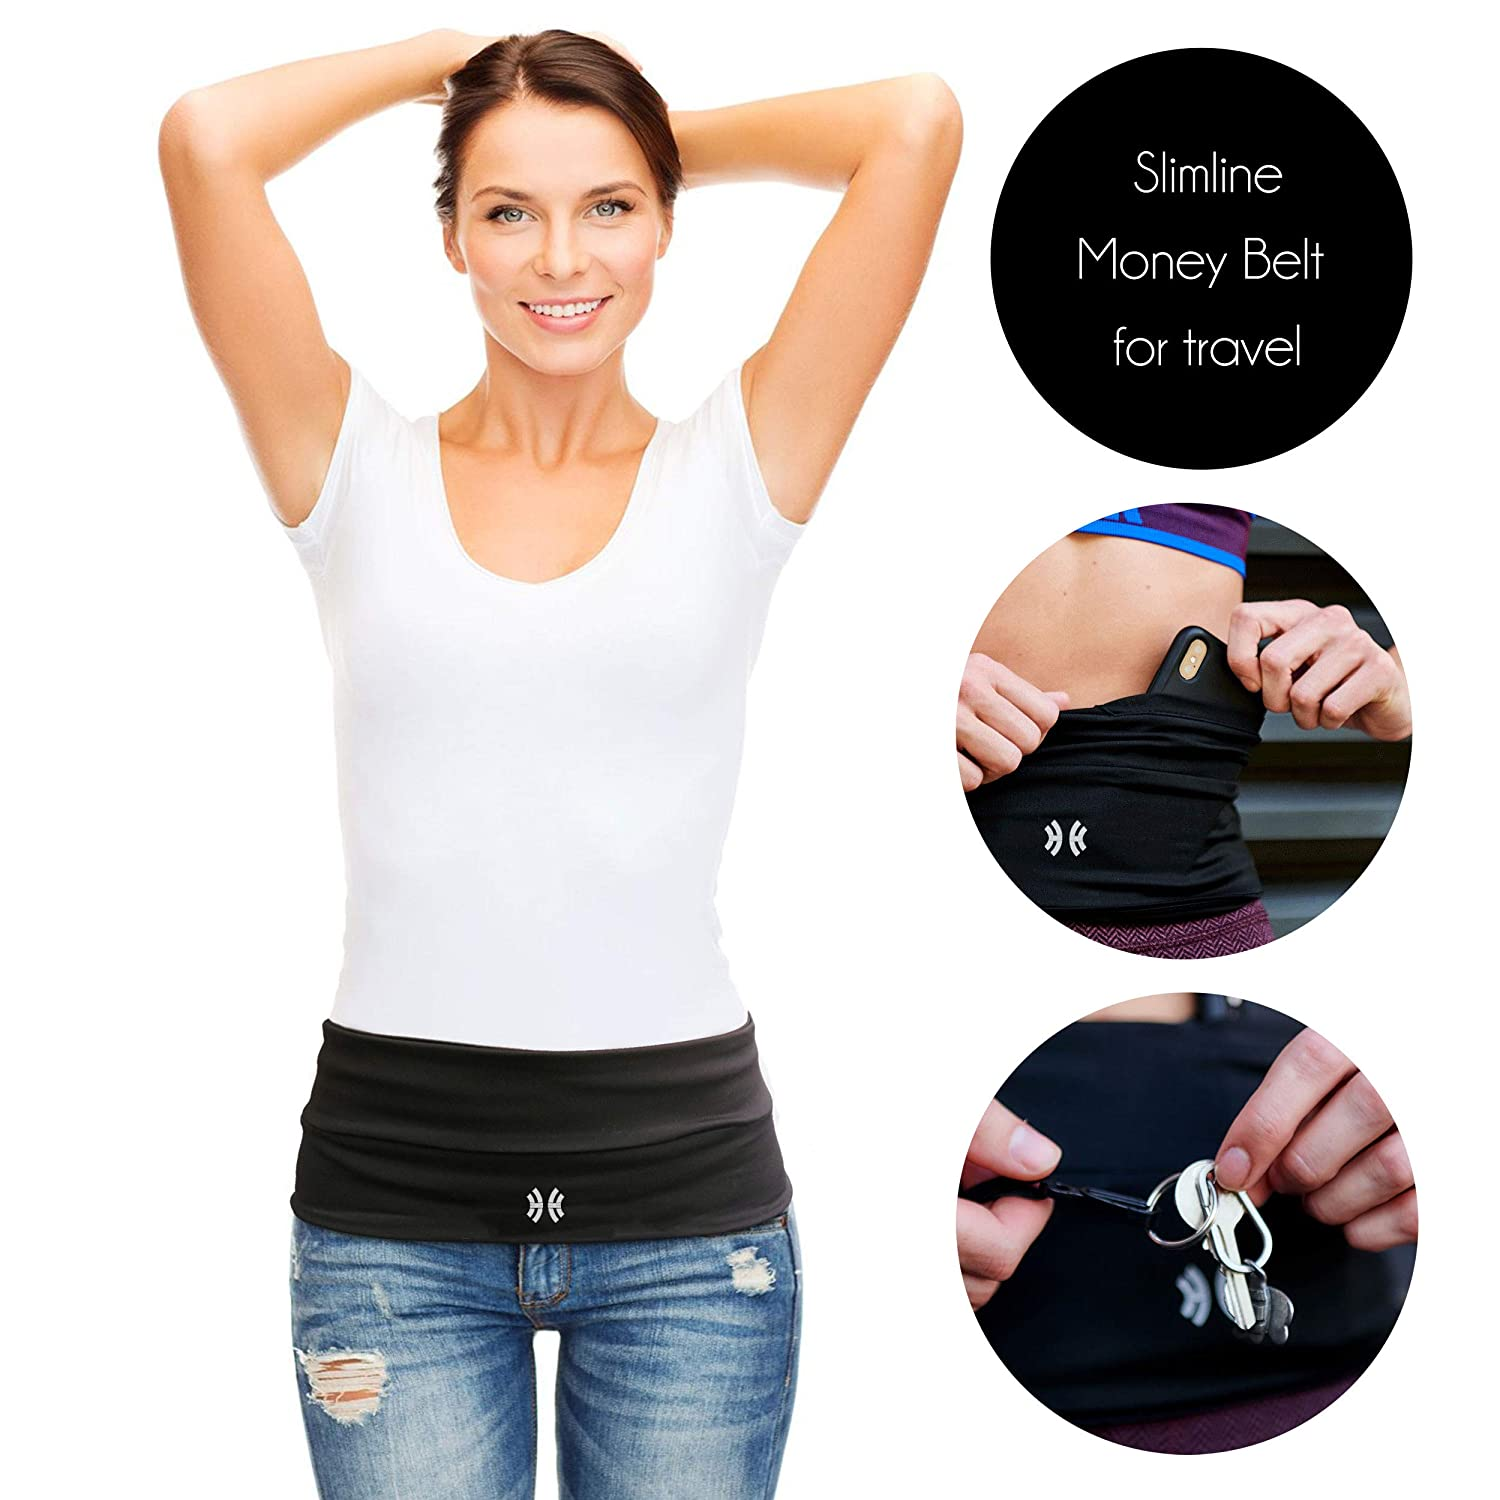 Limber Stretch Travel Money Belt Unisex, Running Belt, Insulin Pump Fanny and Hiking Waist Pack with Key Clip Large Sweatproof Security Pocket Fits All iPhones, Passports Extra Wide Spandex